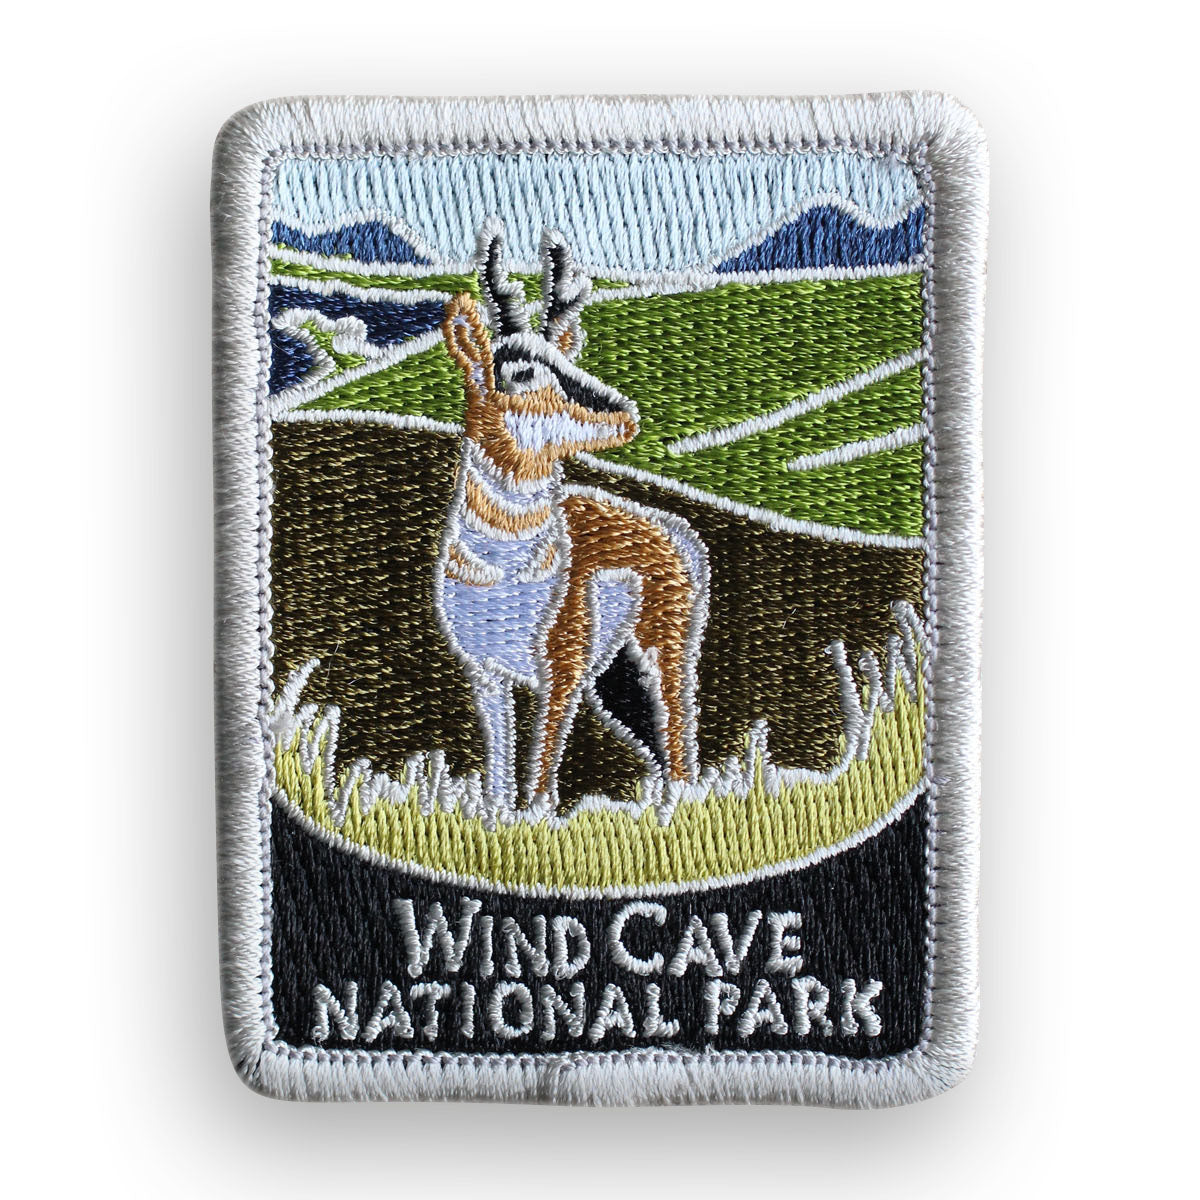 Wind Cave National Park Traveler Patch